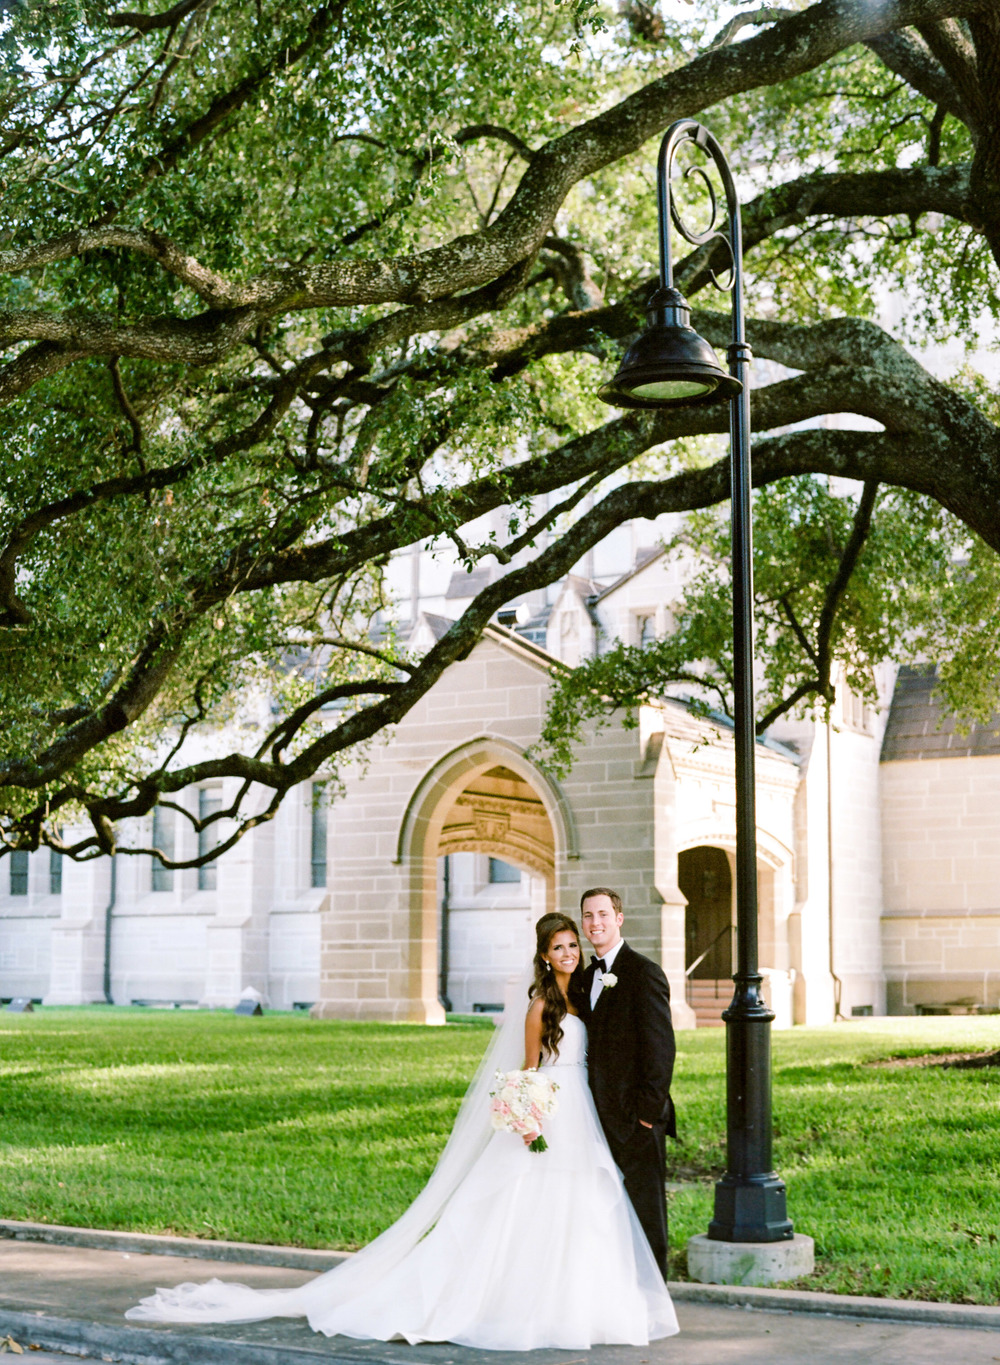 Dana-Fernandez-Photography-Weddings-in-Houston-Magazine-feature-Houston-wedding-photographer-film-27.jpg